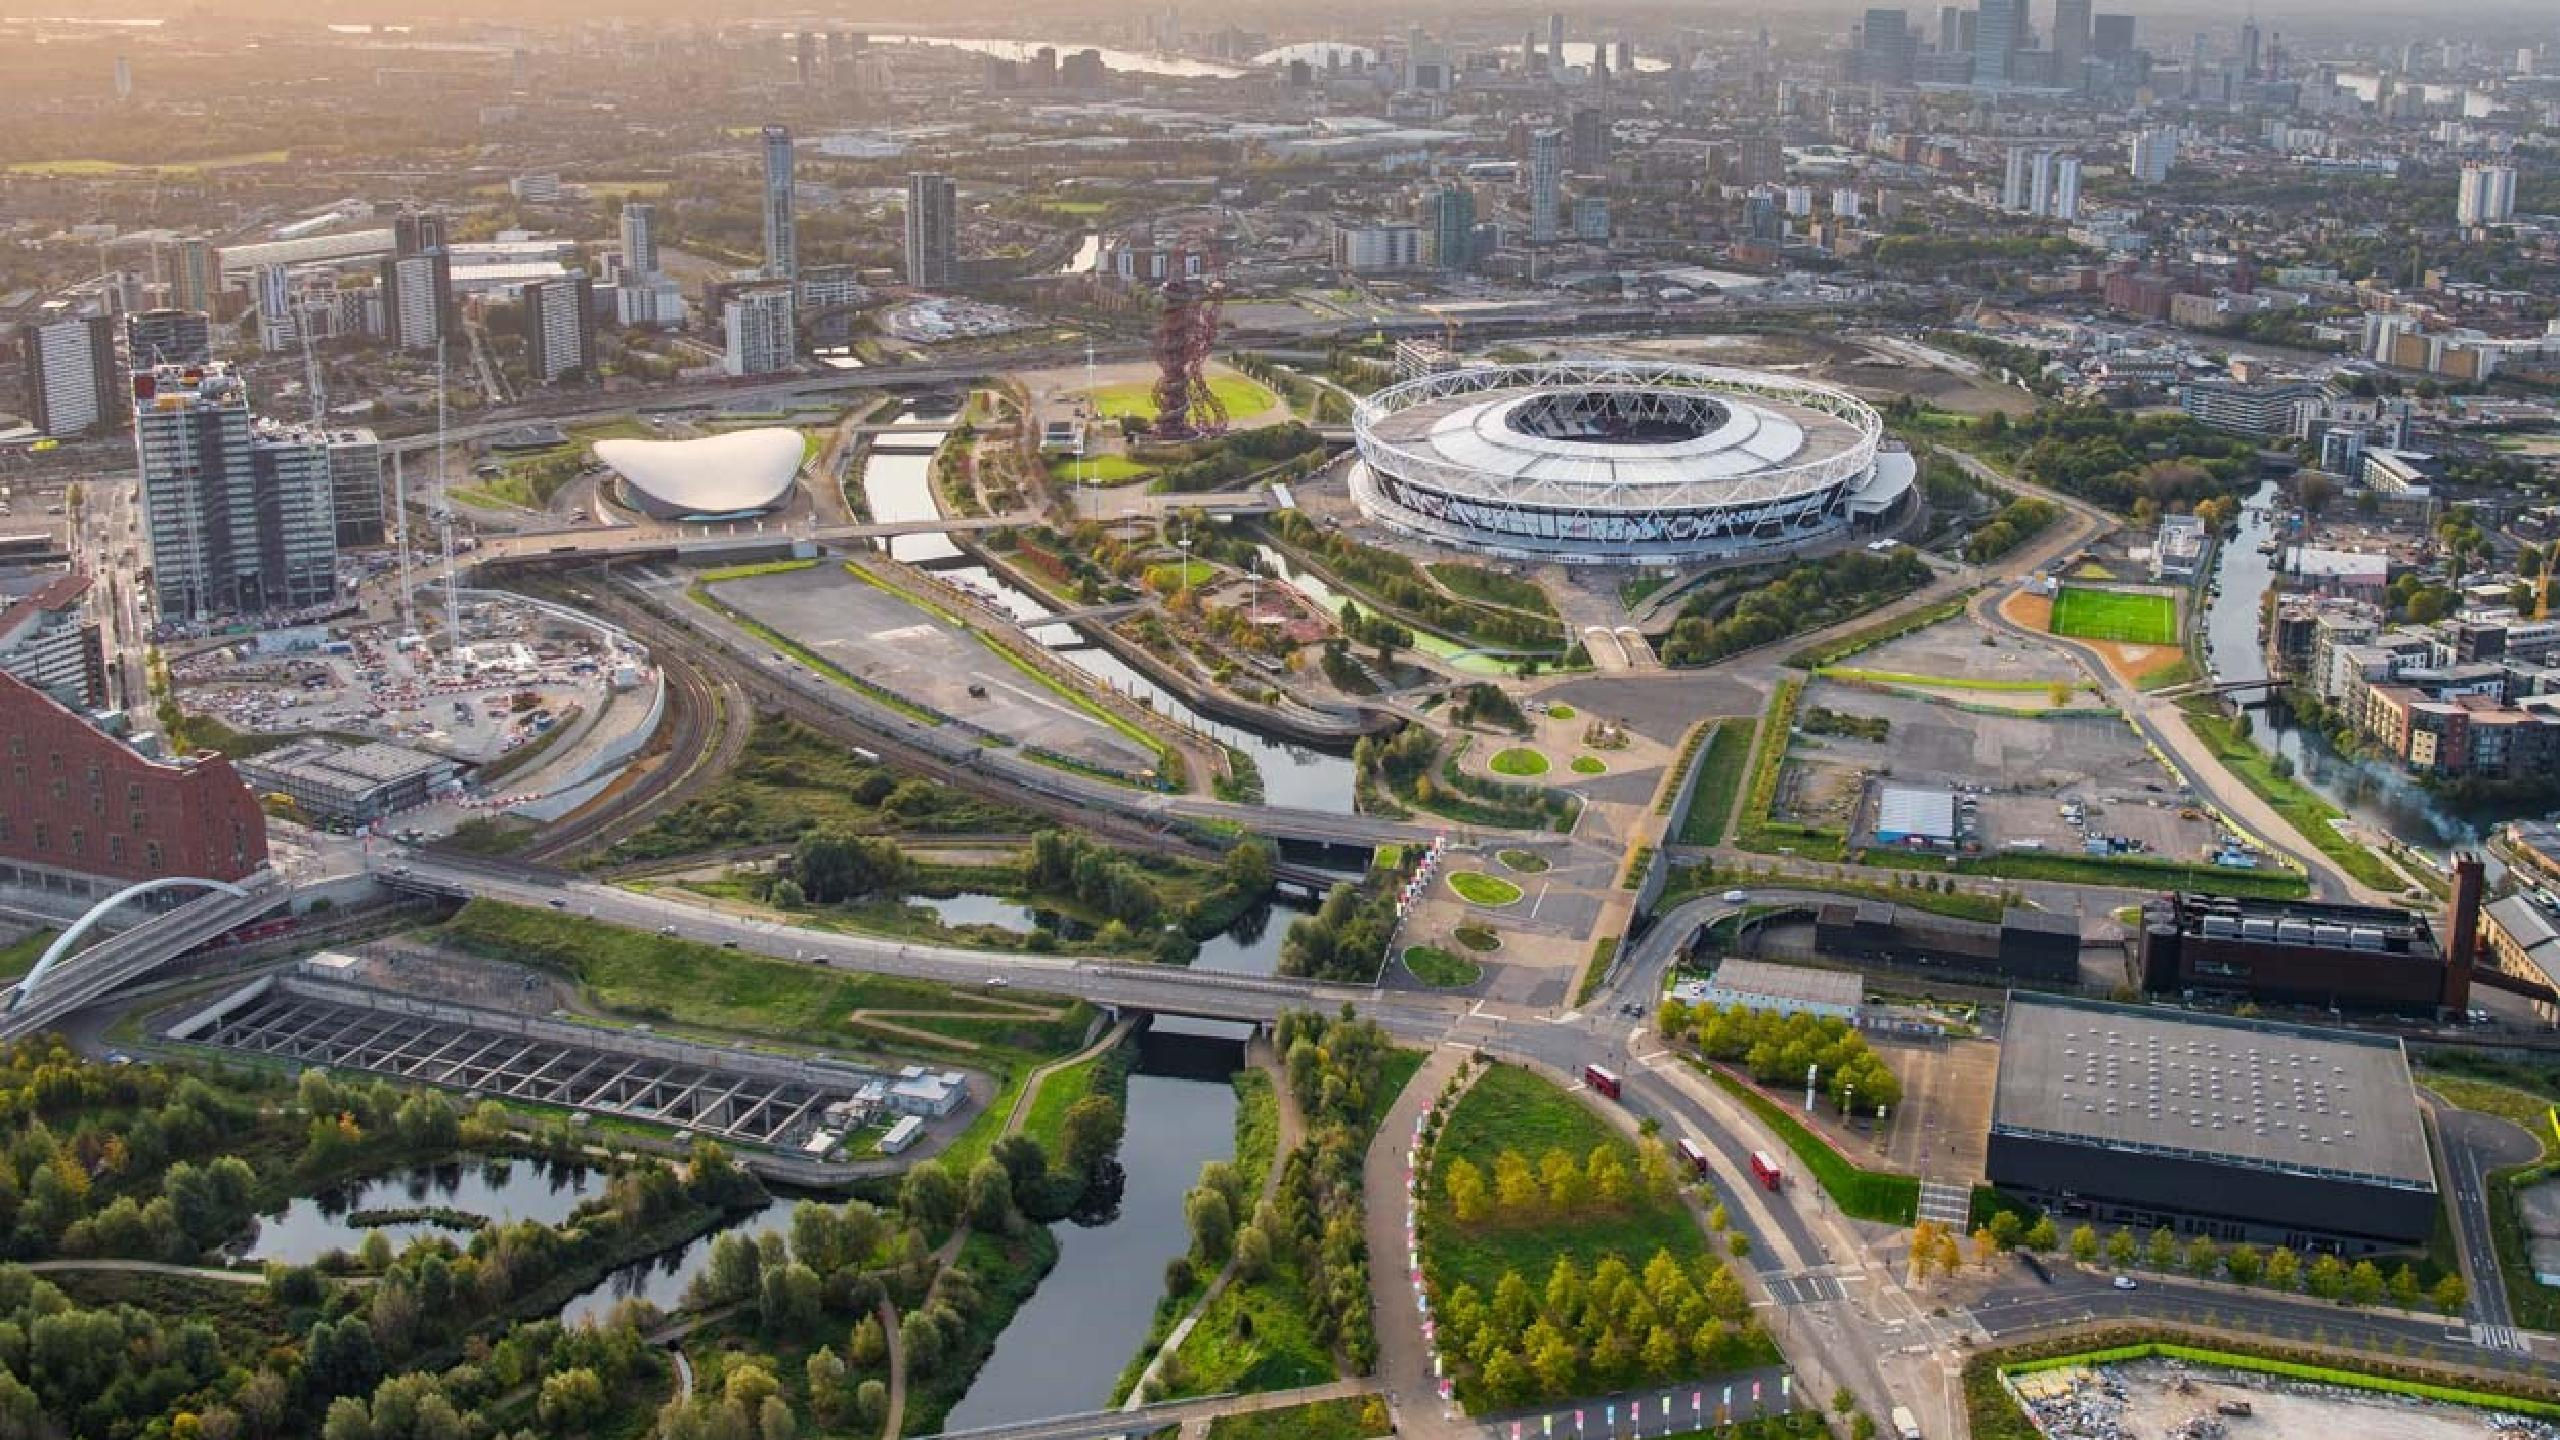 Evaluation of autonomous on-demand pod service at Queen Elizabeth Olympic Park